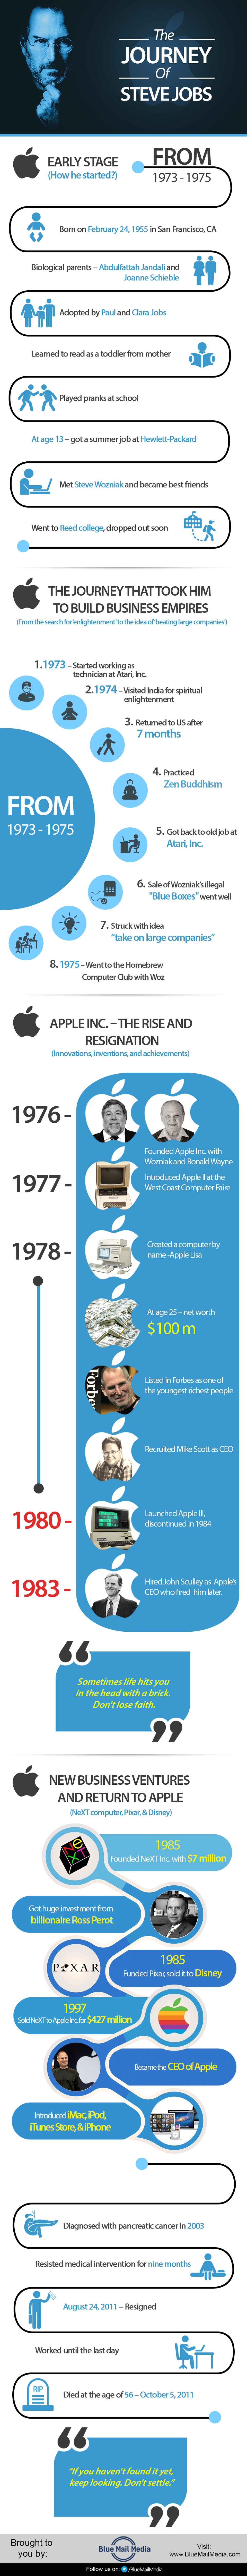 The-Journey-of-Steve-Jobs